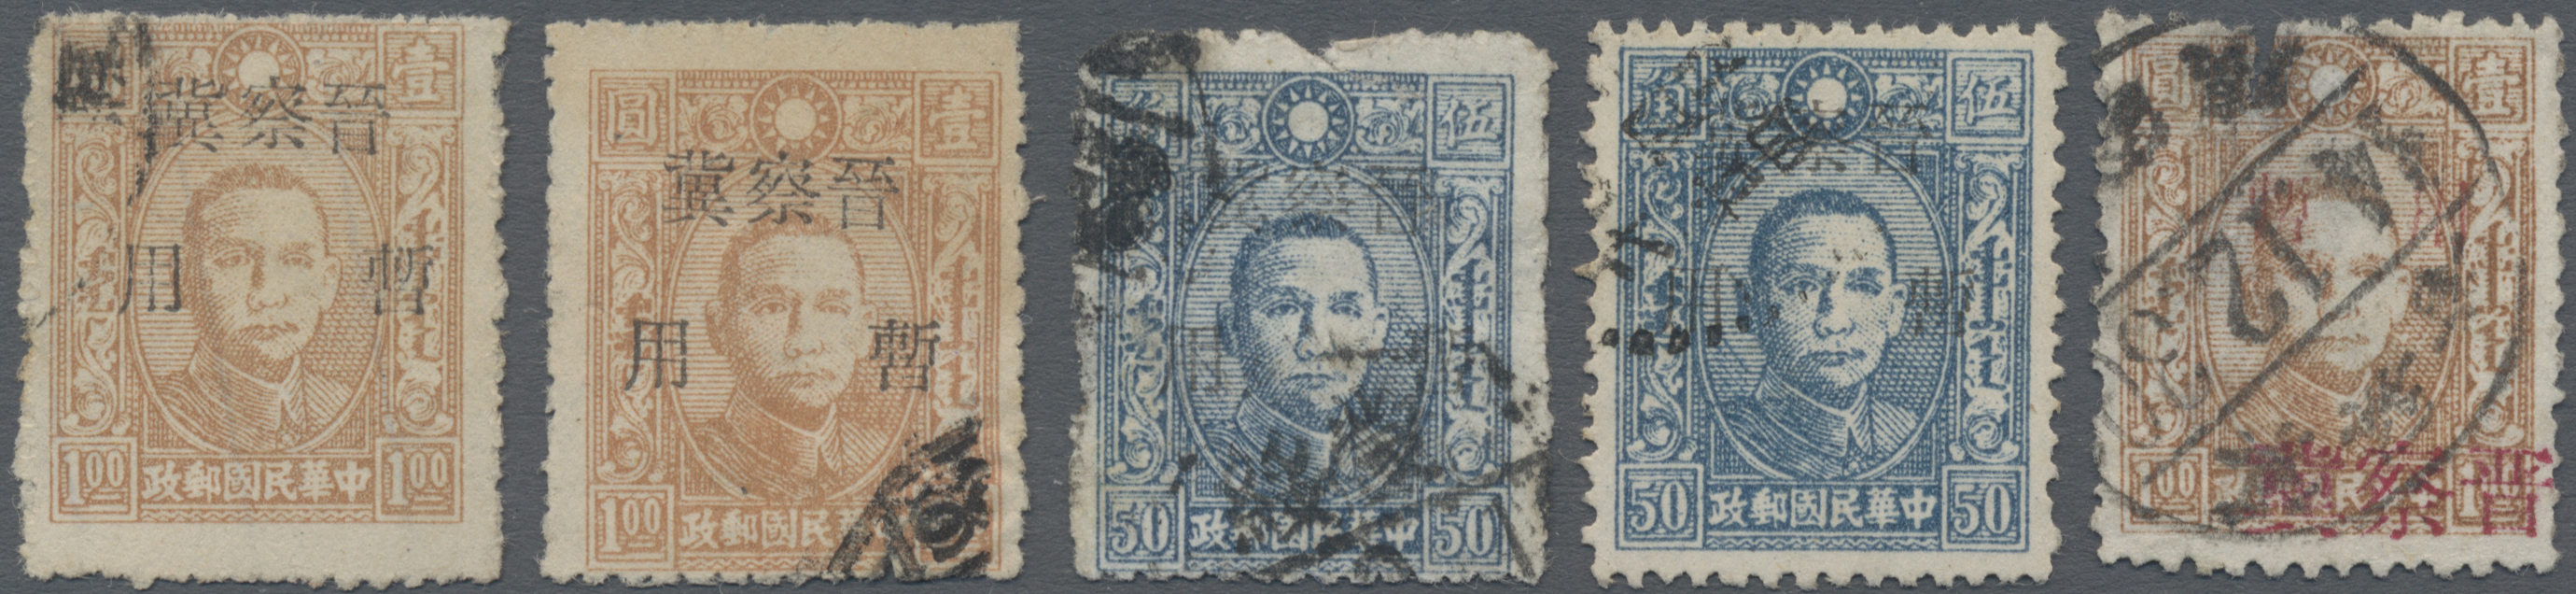 Lot 05505 - China - Volksrepublik - Provinzen  -  Auktionshaus Christoph Gärtner GmbH & Co. KG Sale #45- Special Auction China